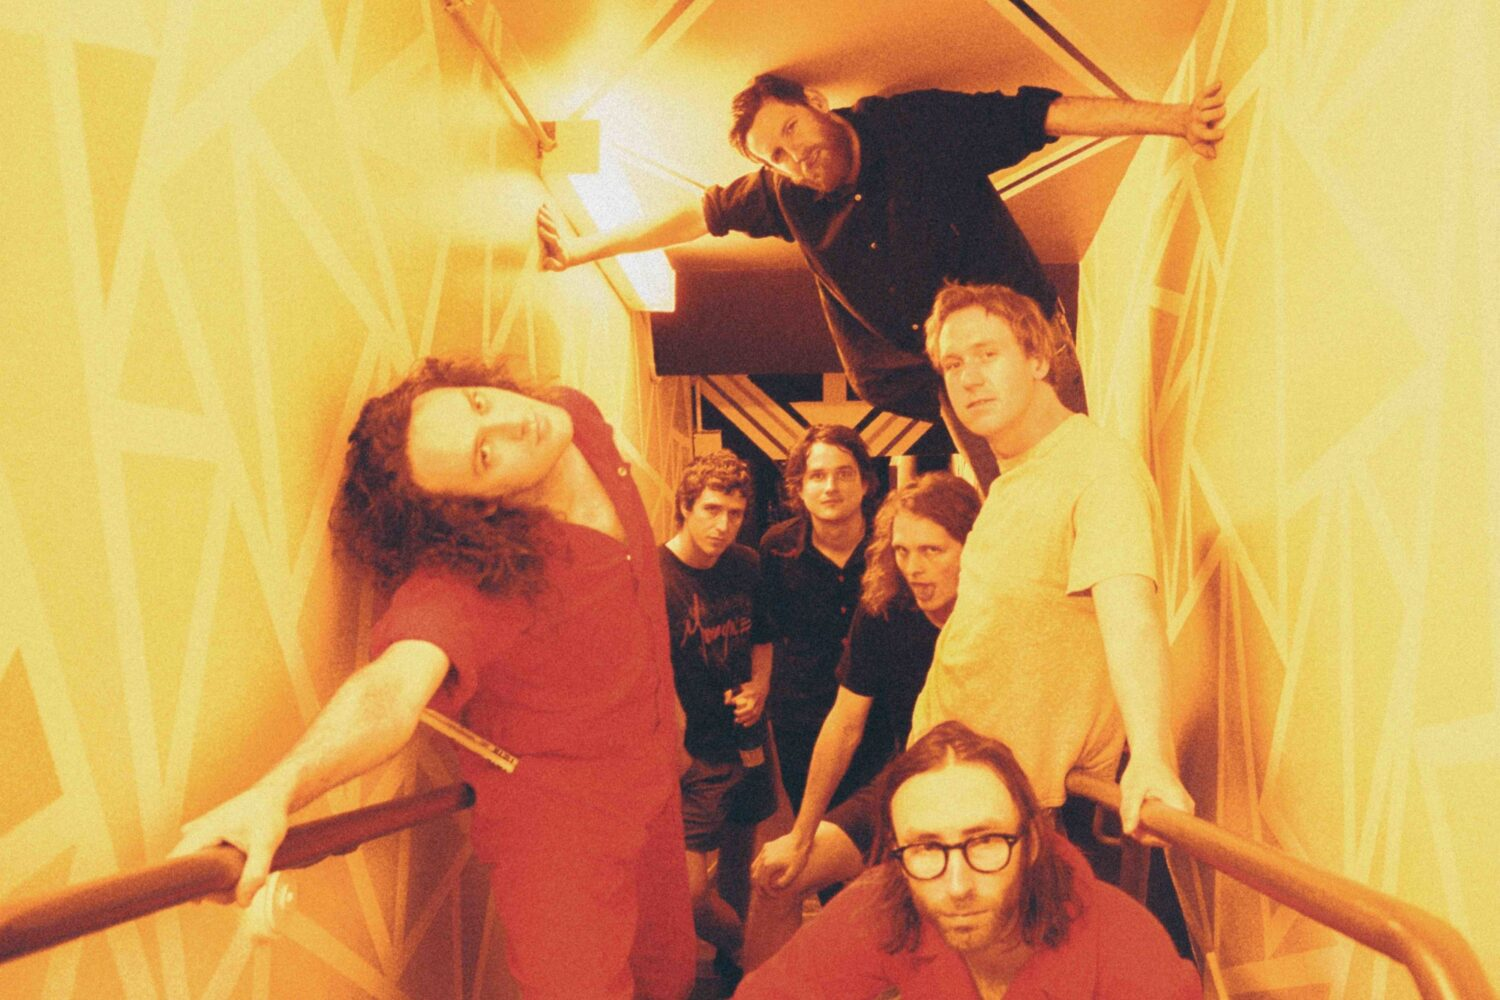 King Gizzard and The Lizard Wizard announce new album 'K.G.'